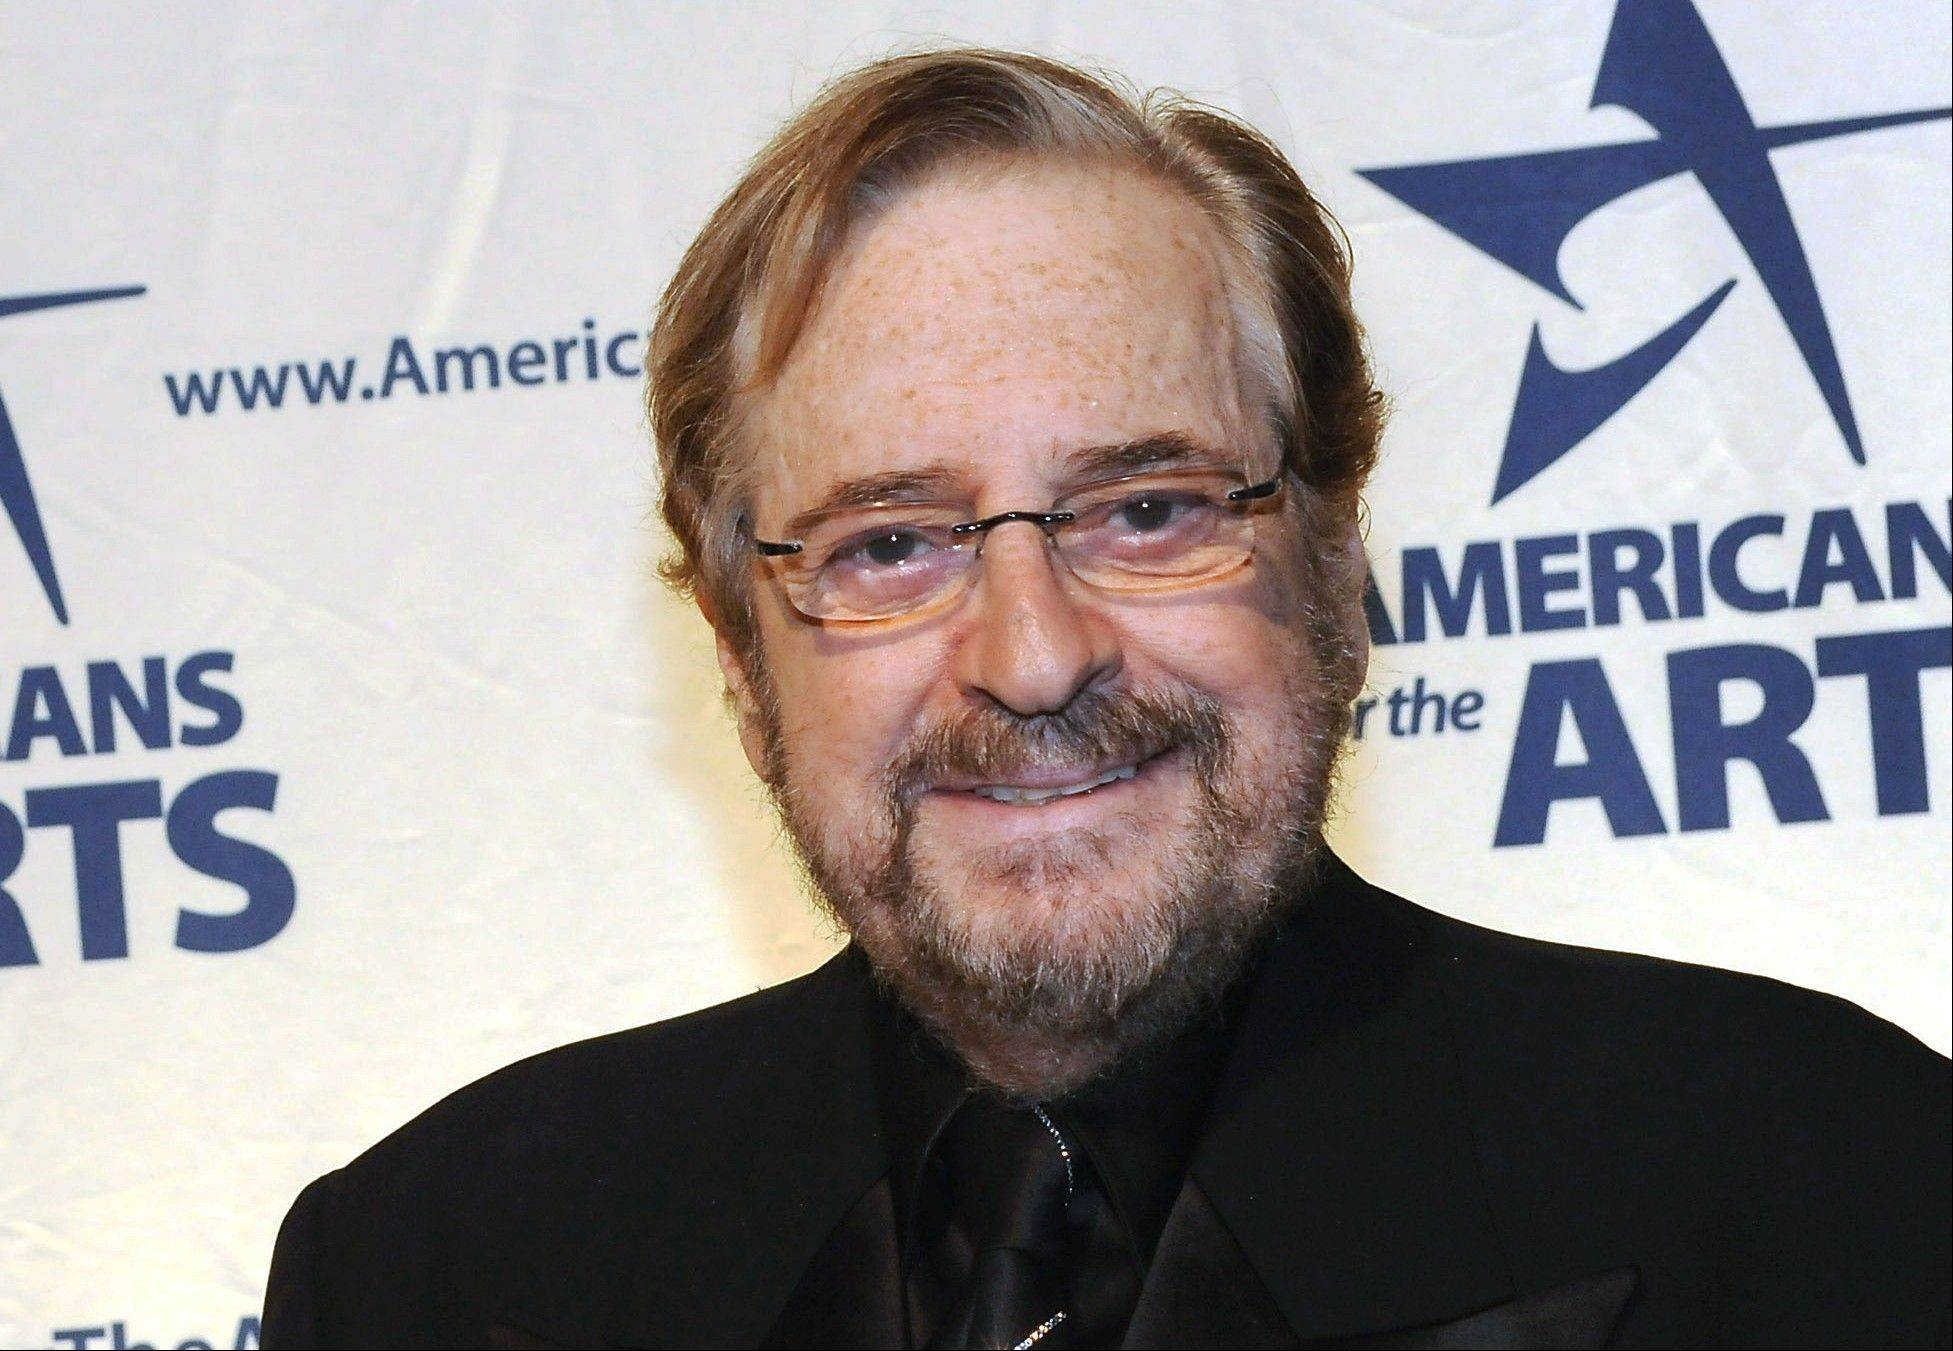 In this Oct. 6, 2008 photo, Arts Advocacy Award honoree Phil Ramone attends the 2008 National Arts Awards presented by Americans For The Arts at Cipriani�s 42nd St. in New York. Ramone, the Grammy Award-winning engineer and producer whose platinum touch included recordings with Ray Charles, Billy Joel and Paul Simon, has died. He was 72. His son, Matt Ramone, confirmed the death. Phil Ramone was among the most honored and successful music producers in history, winning 14 Grammys and working with many of the top artists of his era.